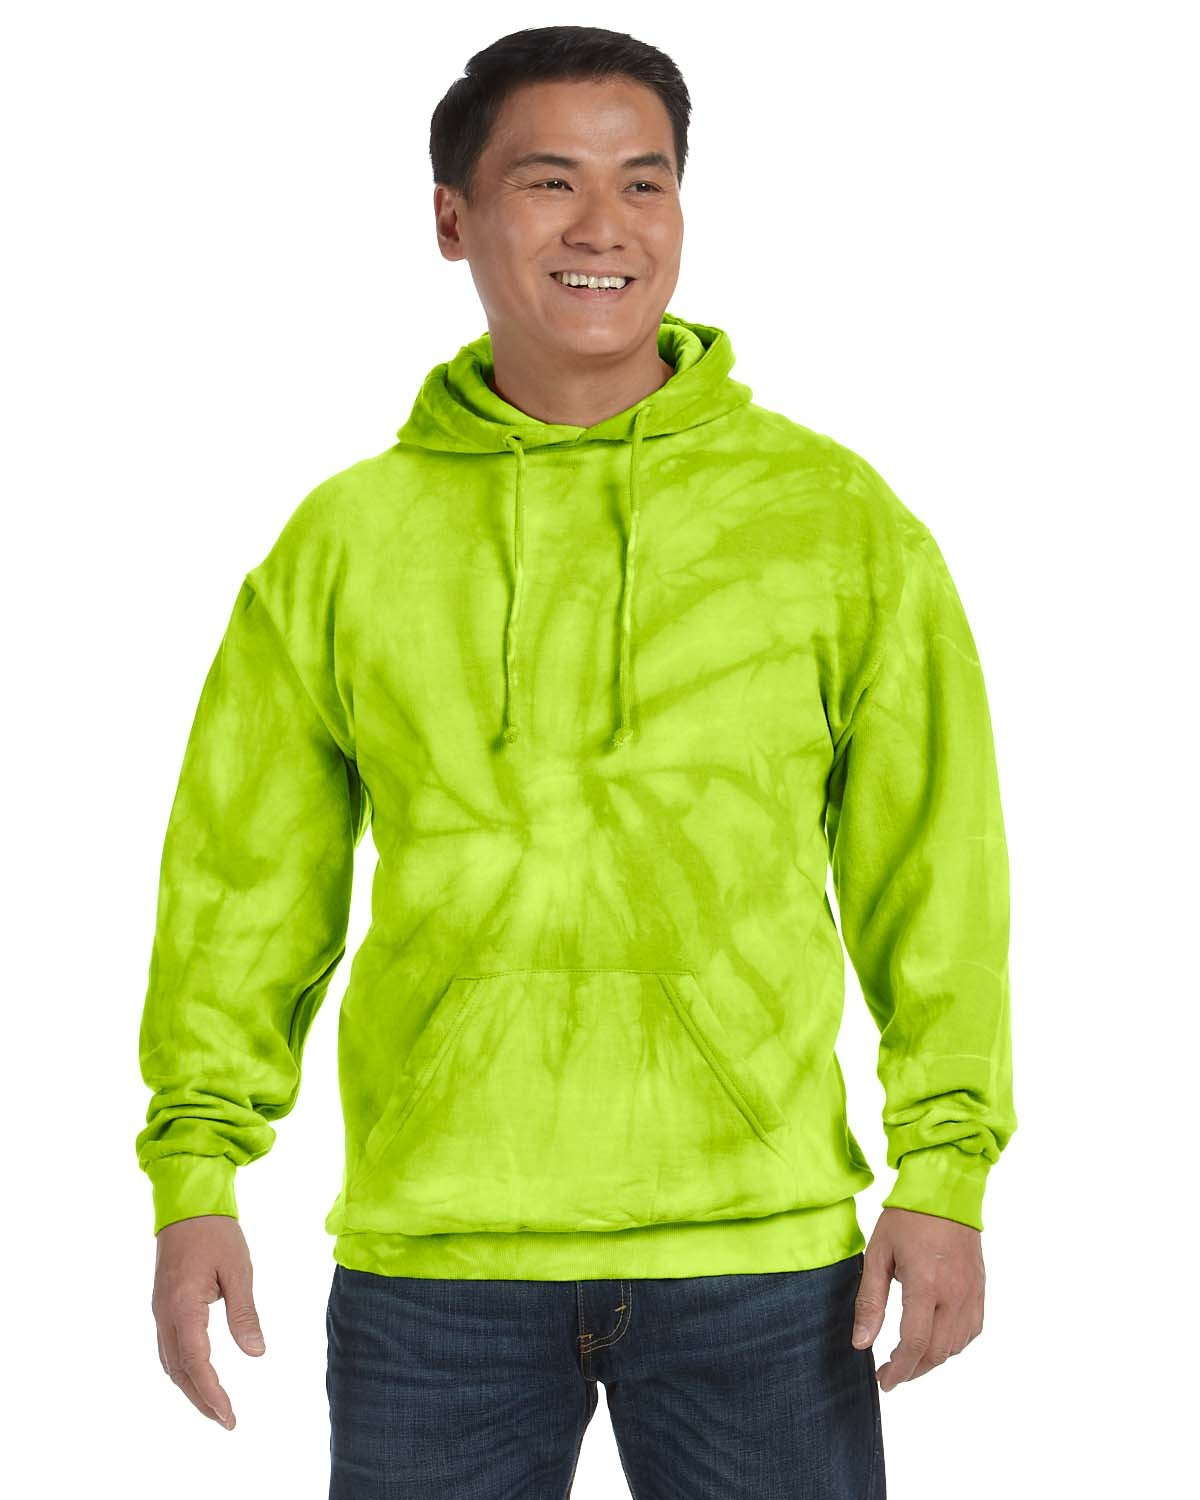 CD877 Tie-Dye SPIDER LIME